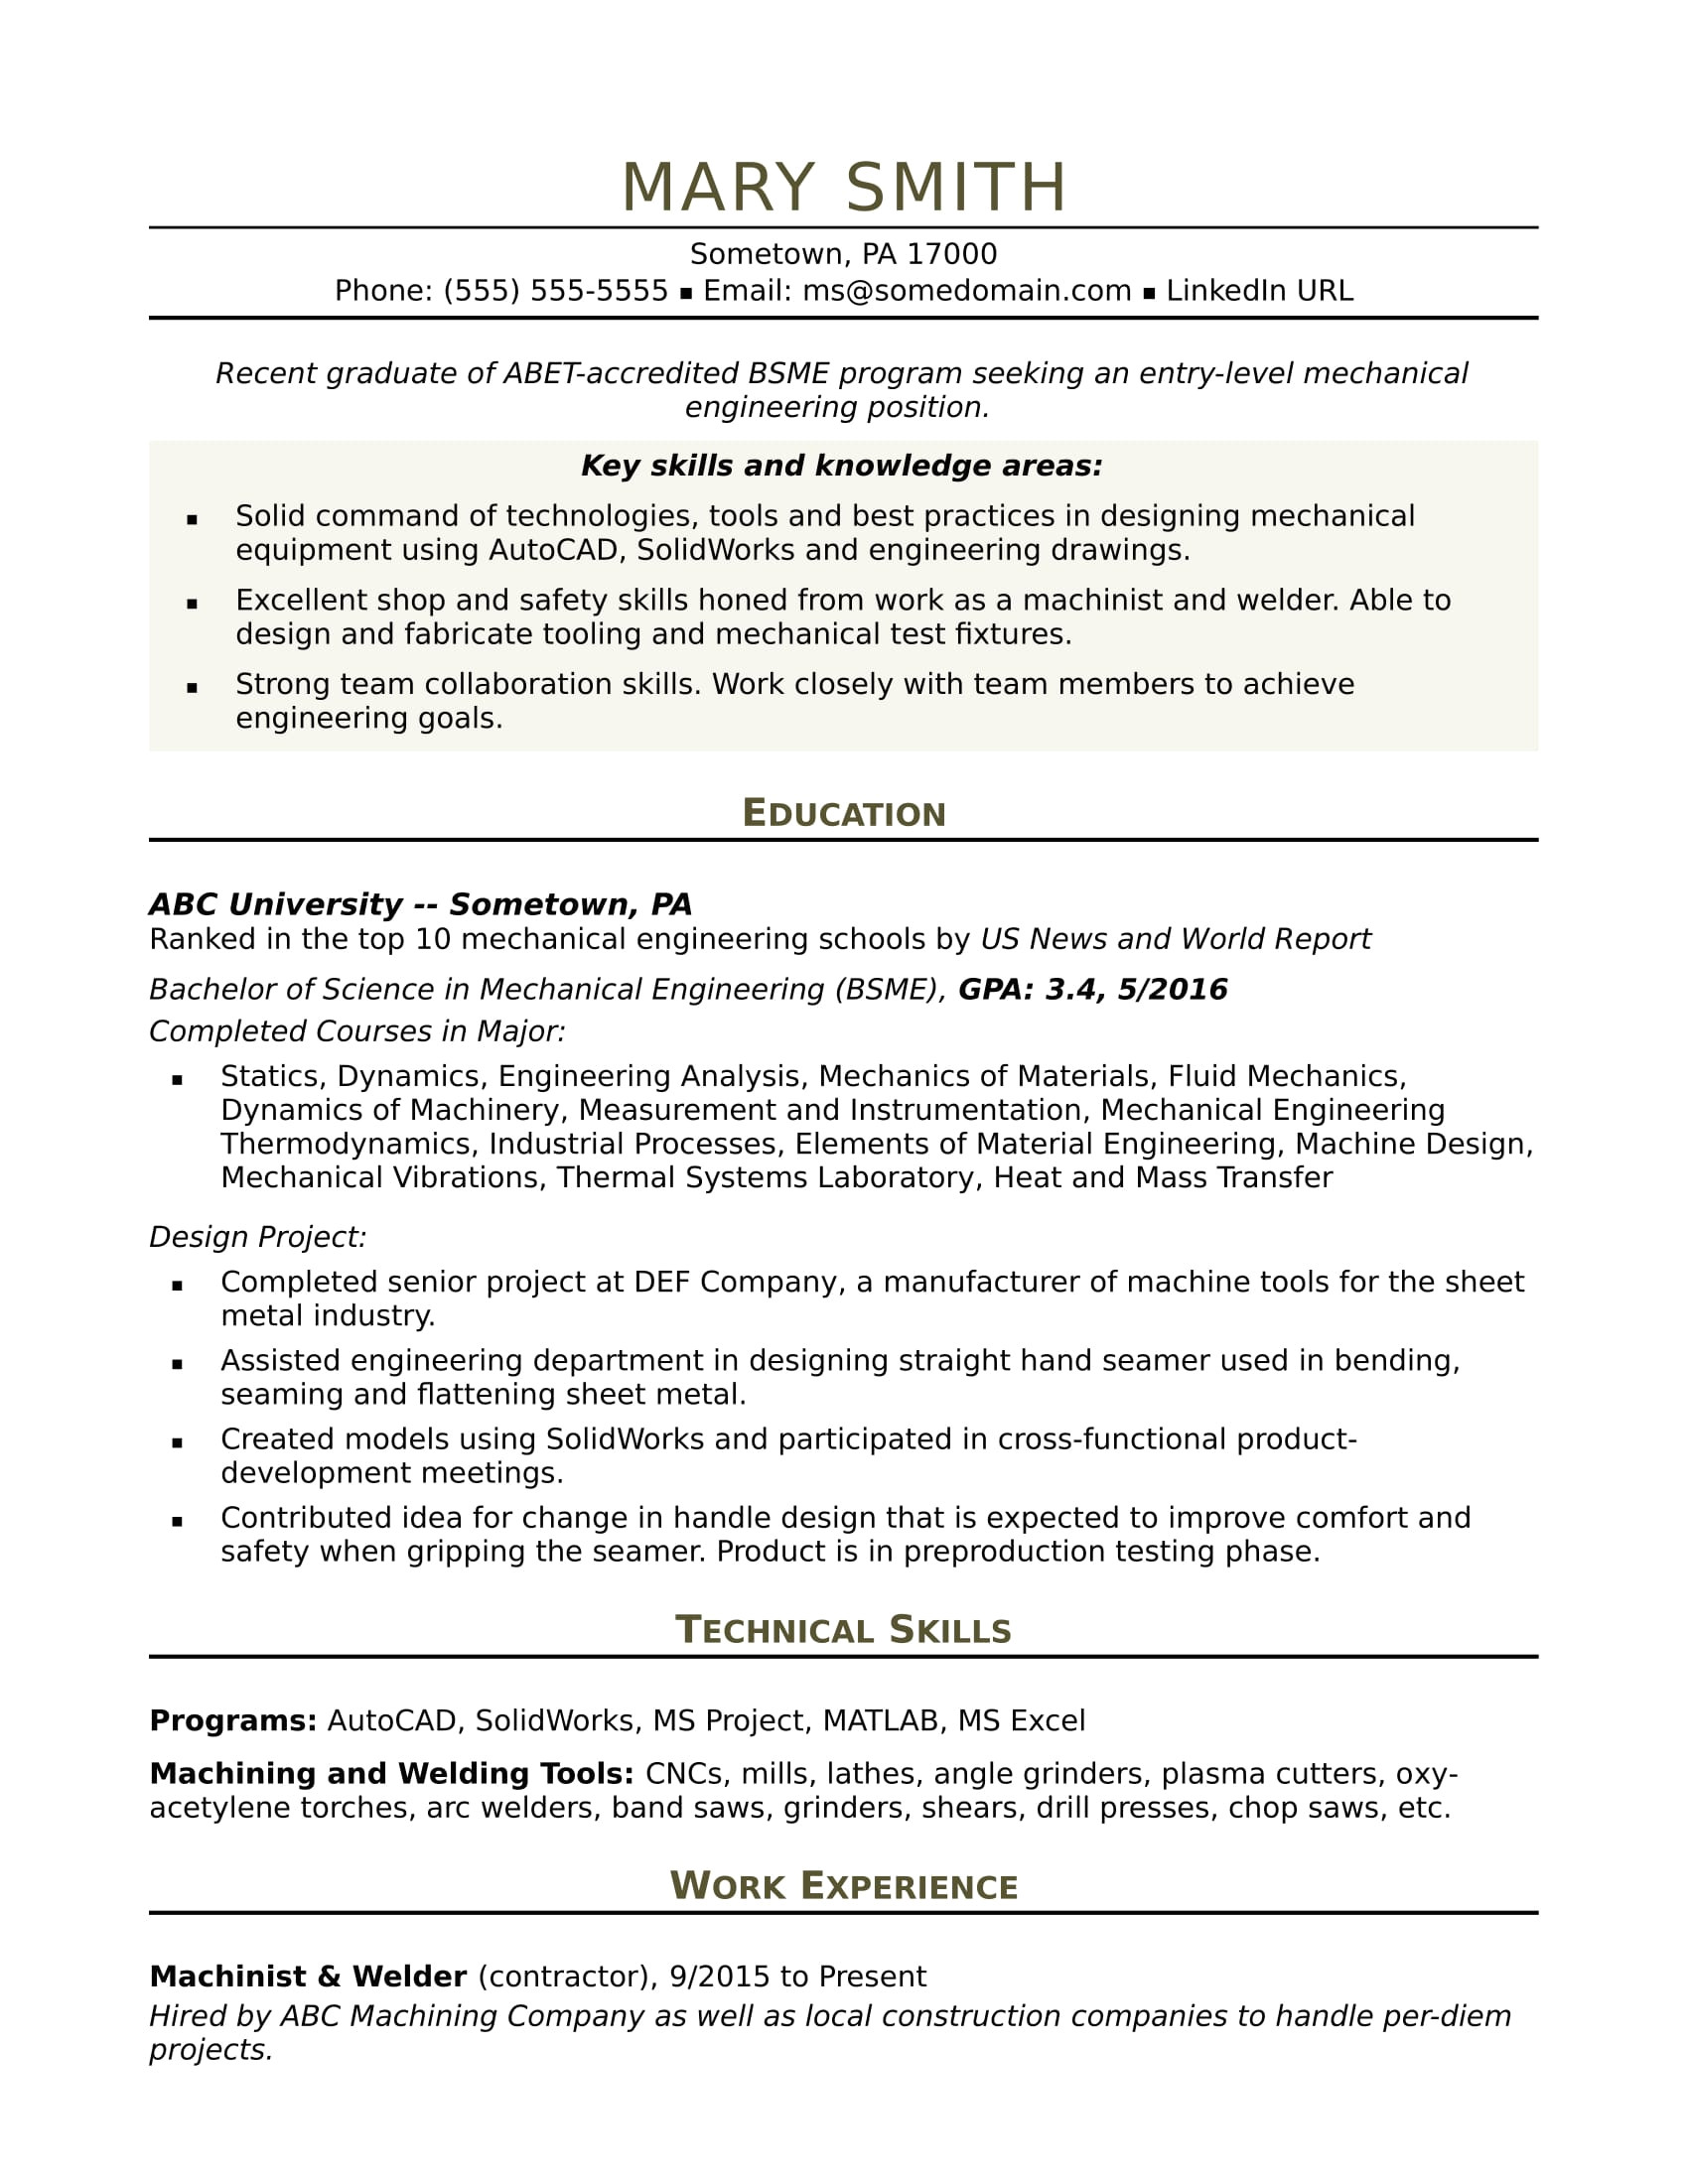 Mechanical Engineering Technologist Resume Sample Sample Resume for An Entry Level Mechanical Engineer